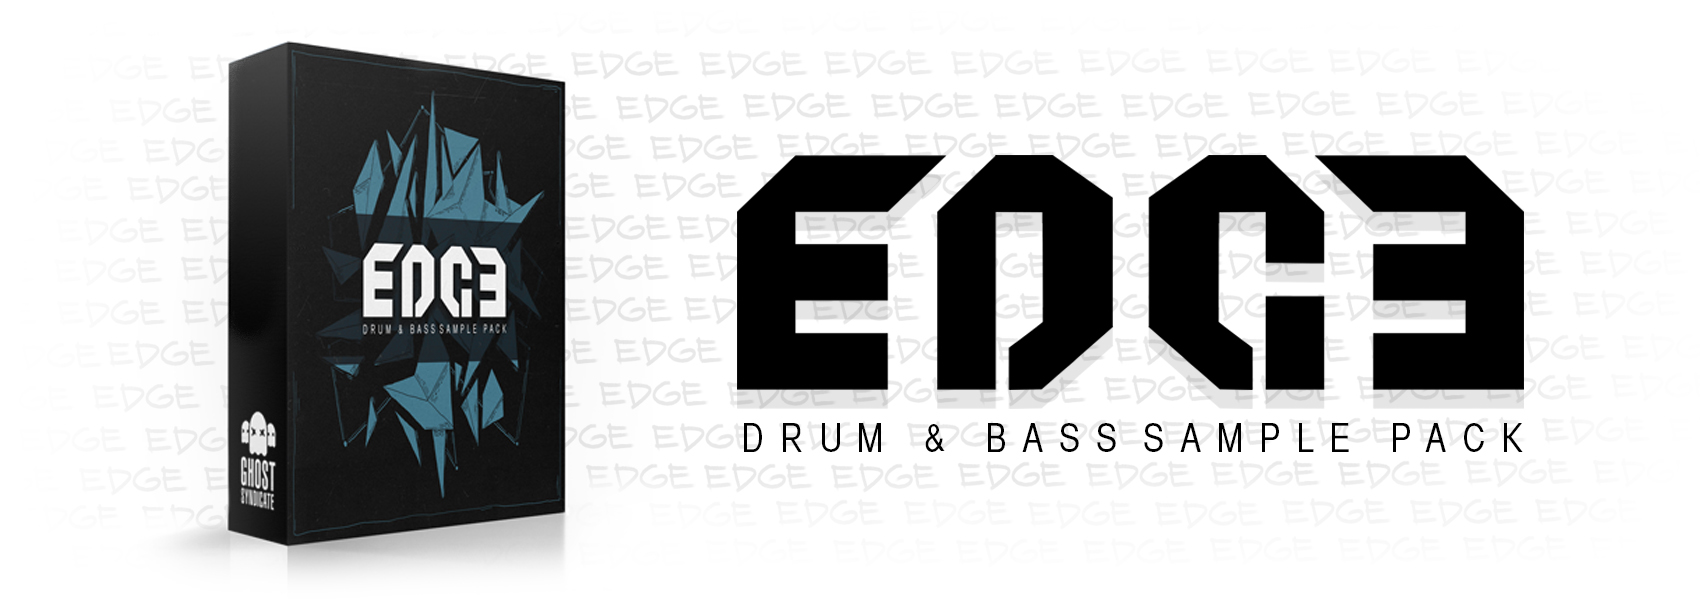 EDGE, Drum and Bass Sample Pack, Ghost Syndicate